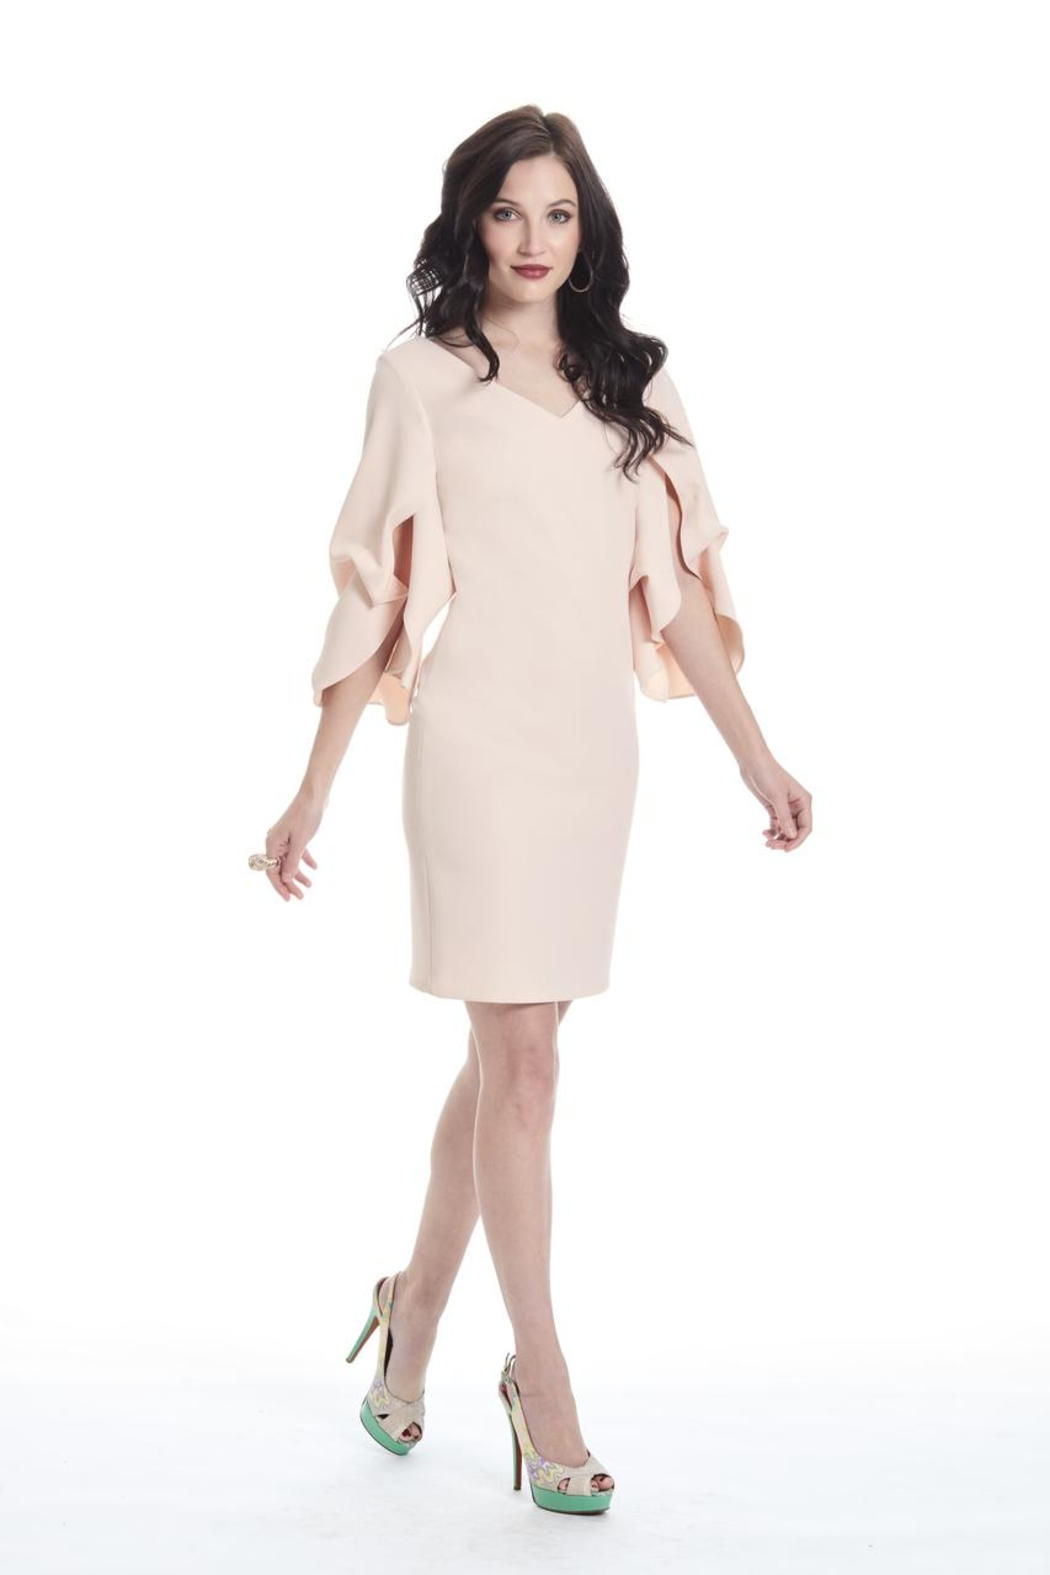 c93b0ce4cf9 Alberto Makali Crepe Dress from Wallingford by The Dressing Room ...